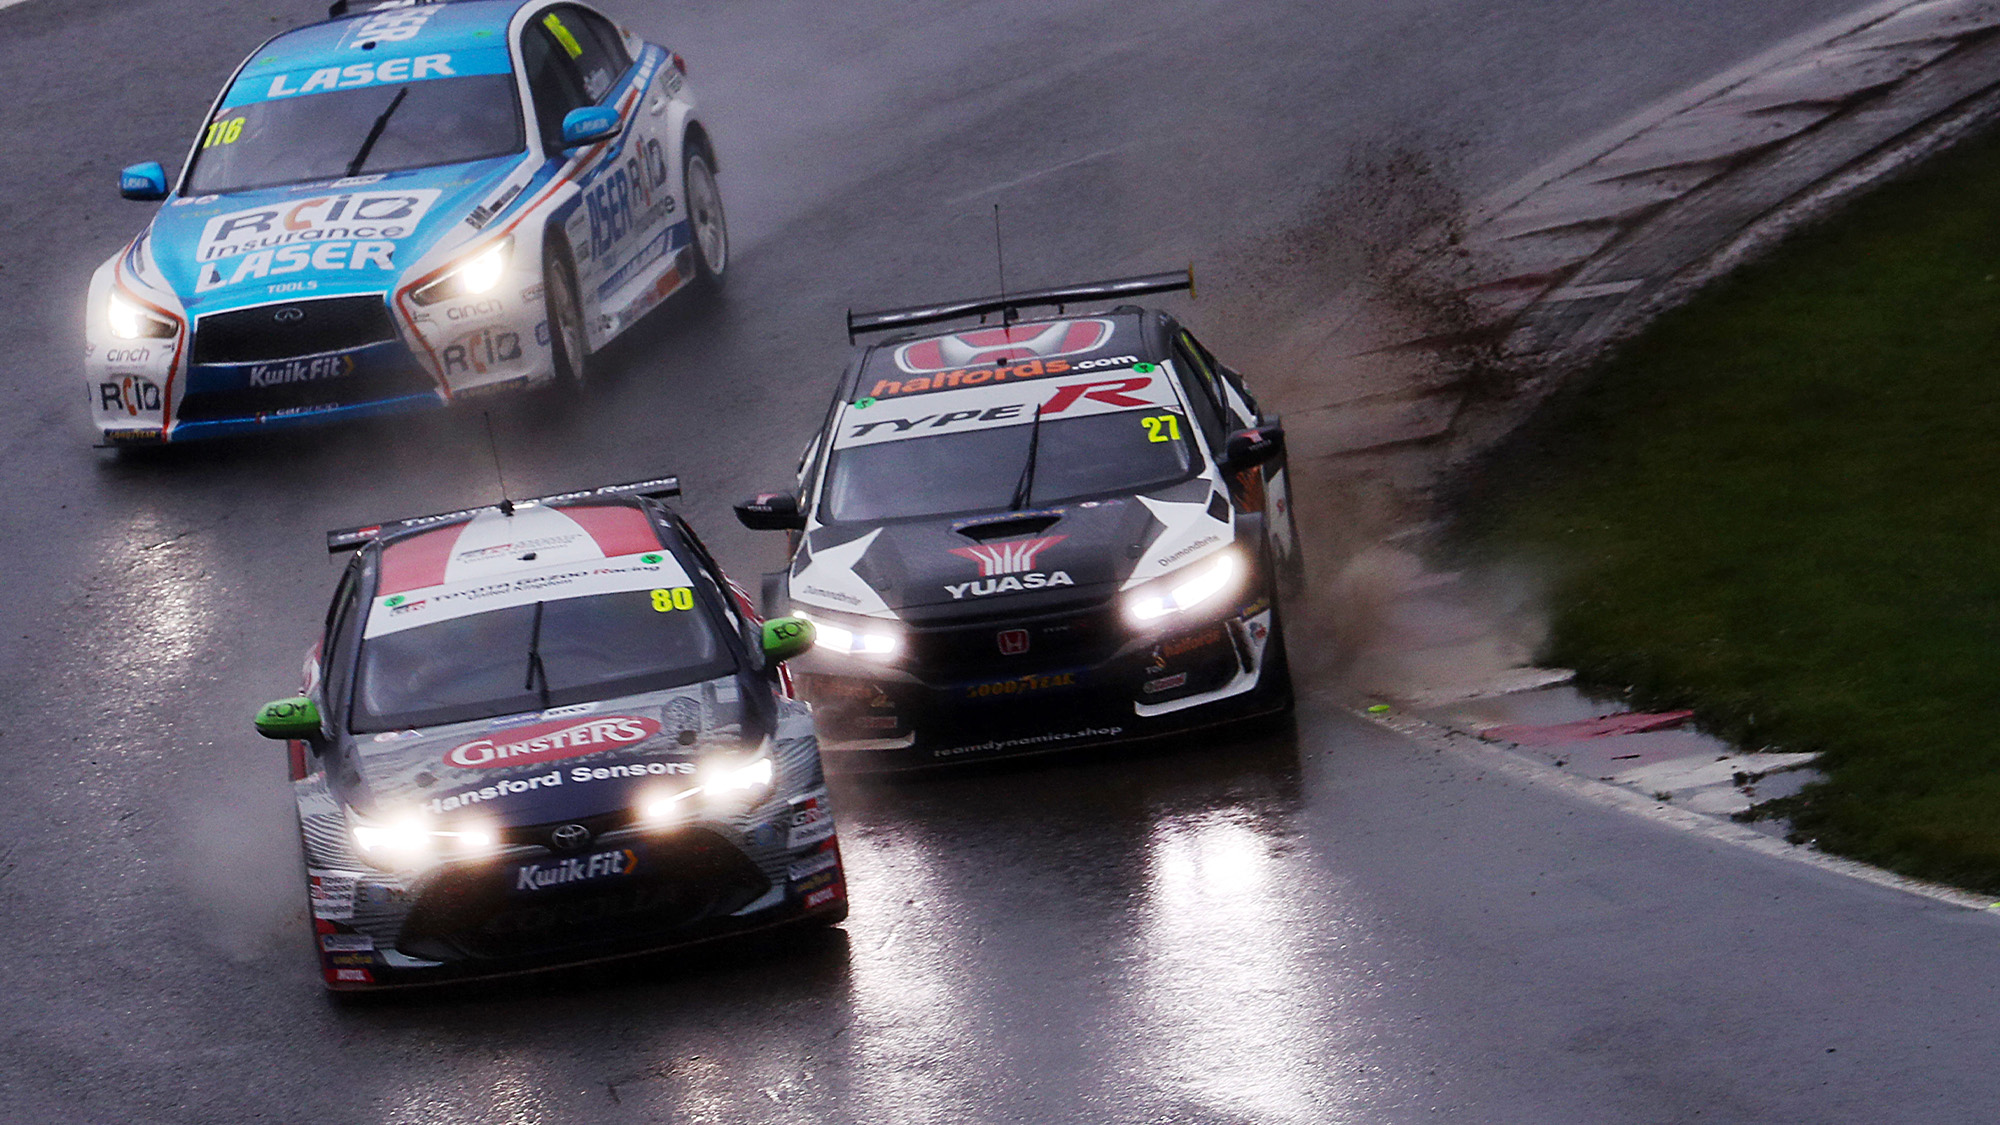 Tom Ingram leads Dan Cammish and Ash Sutton at Brands Hatch in the 2020 BTCC